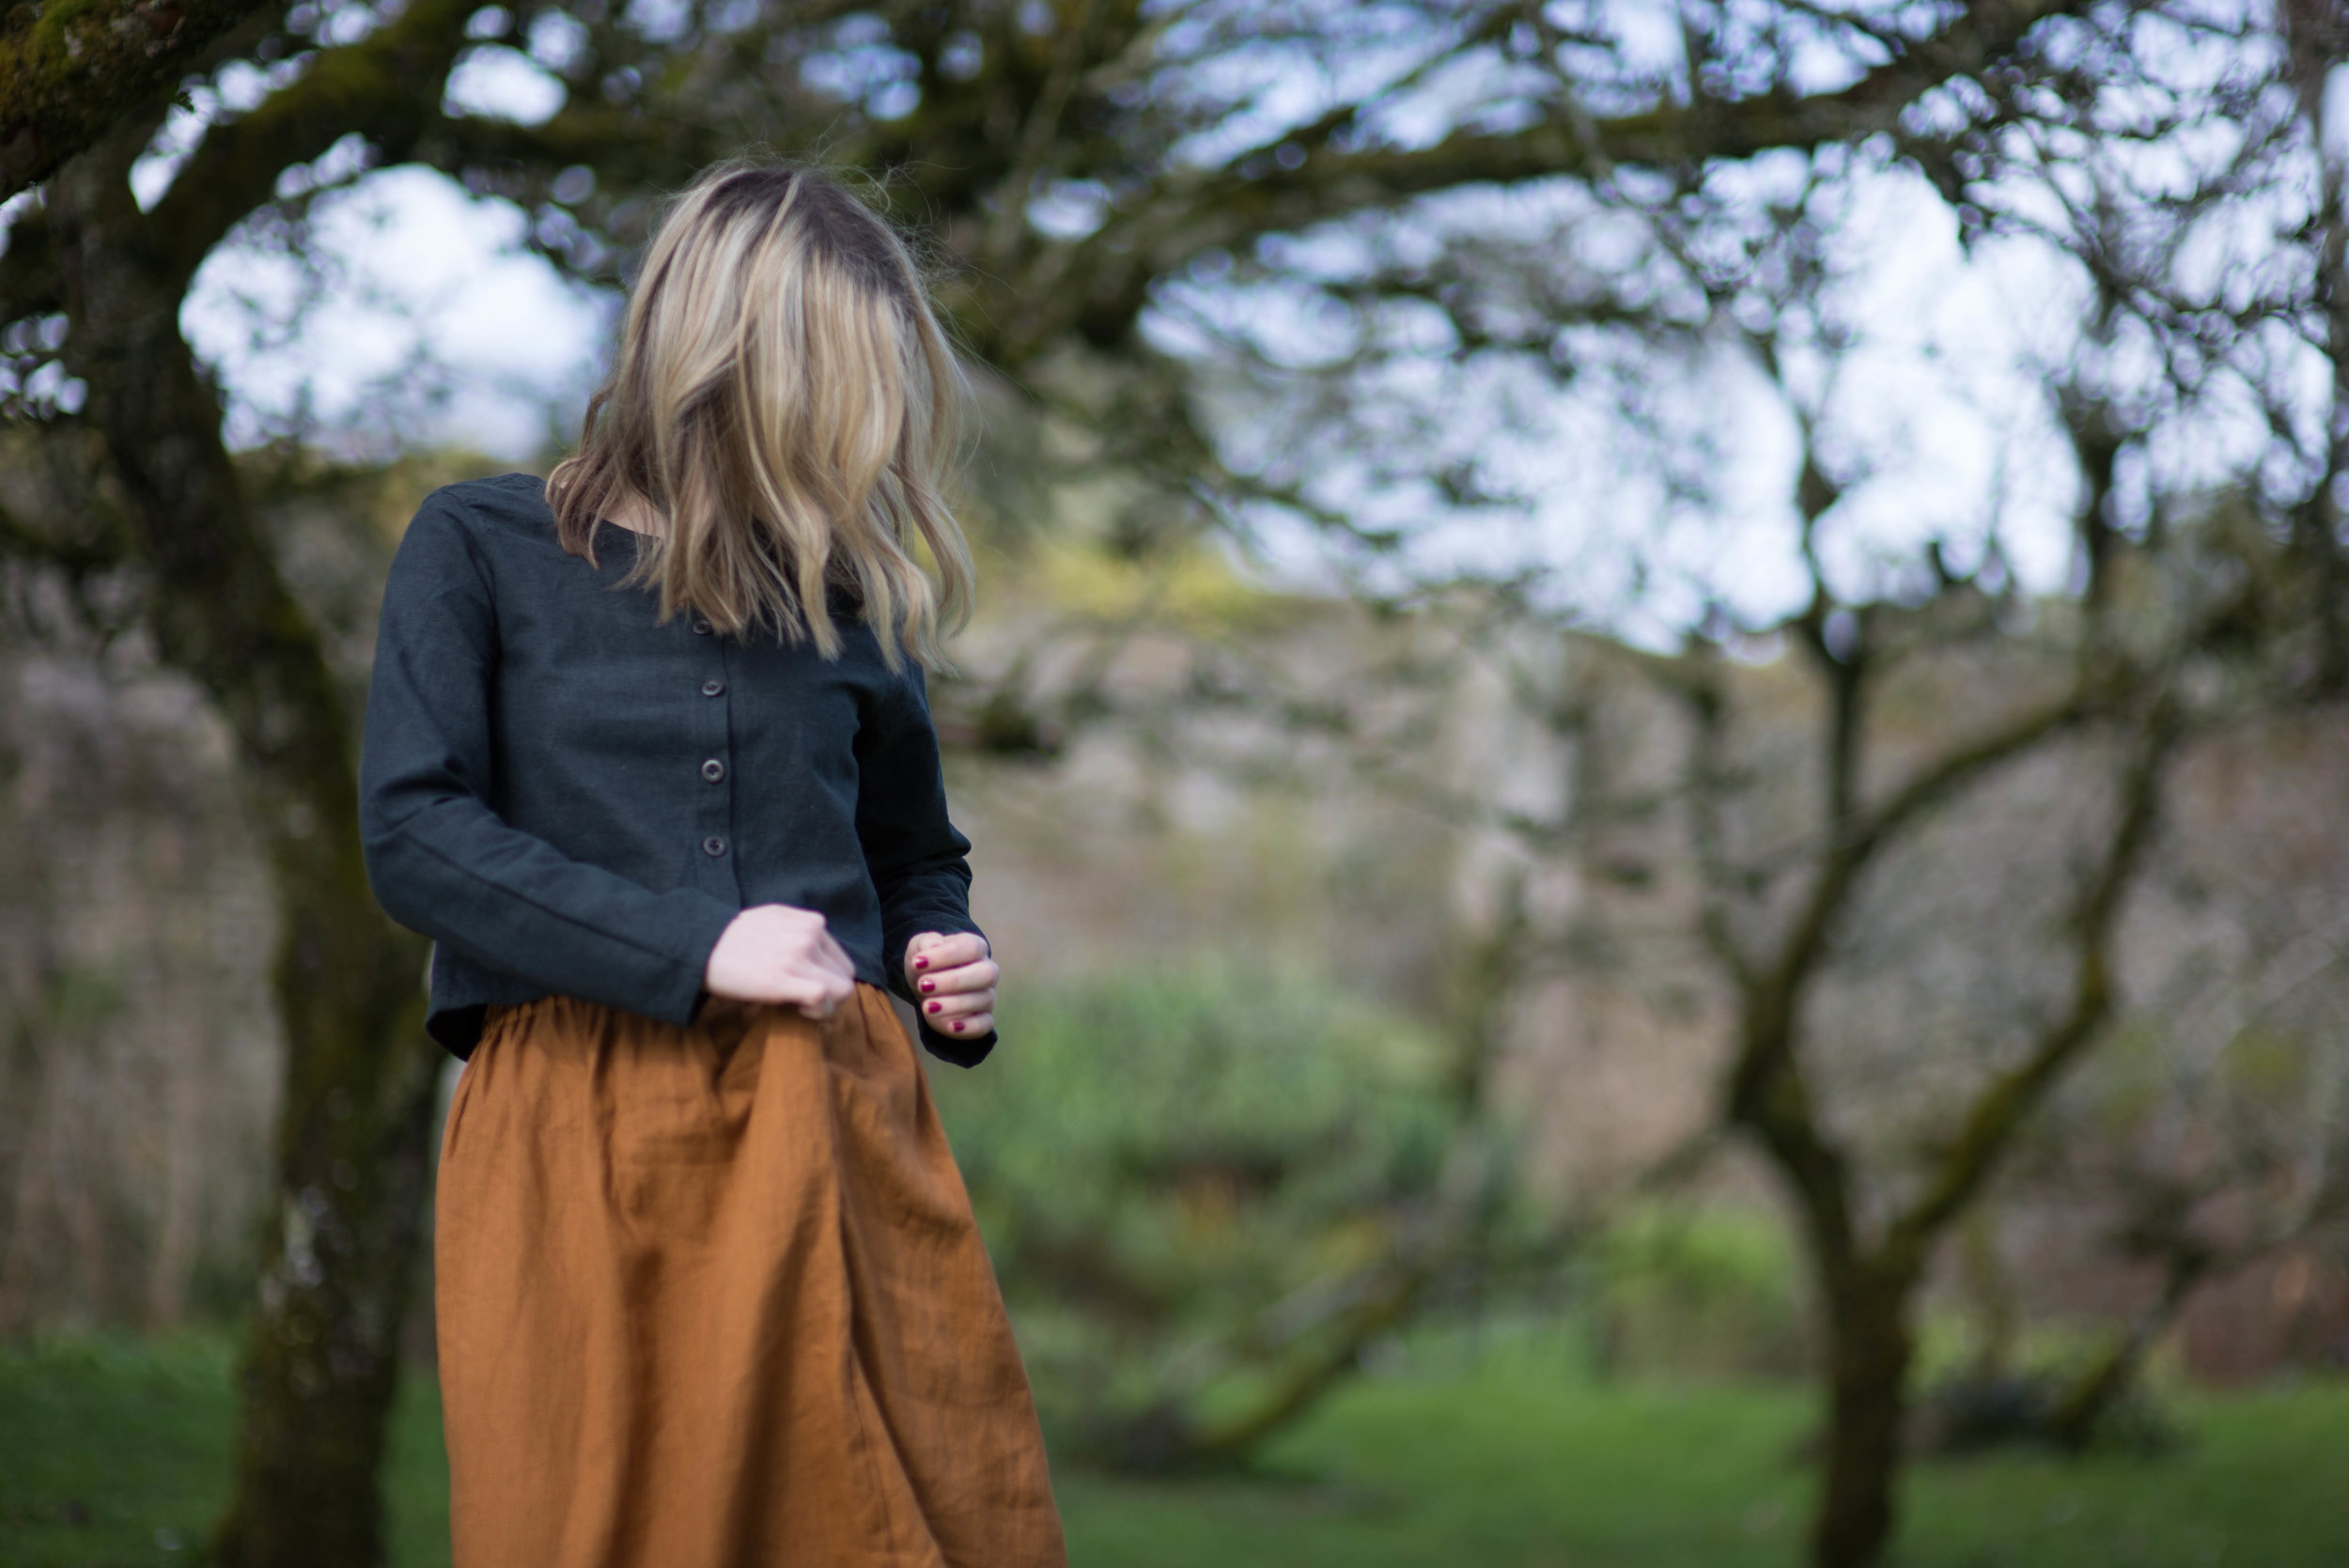 Rosie wearing the ATHENA TOP in charcoal with the ITHACA SKIRT in ochre.